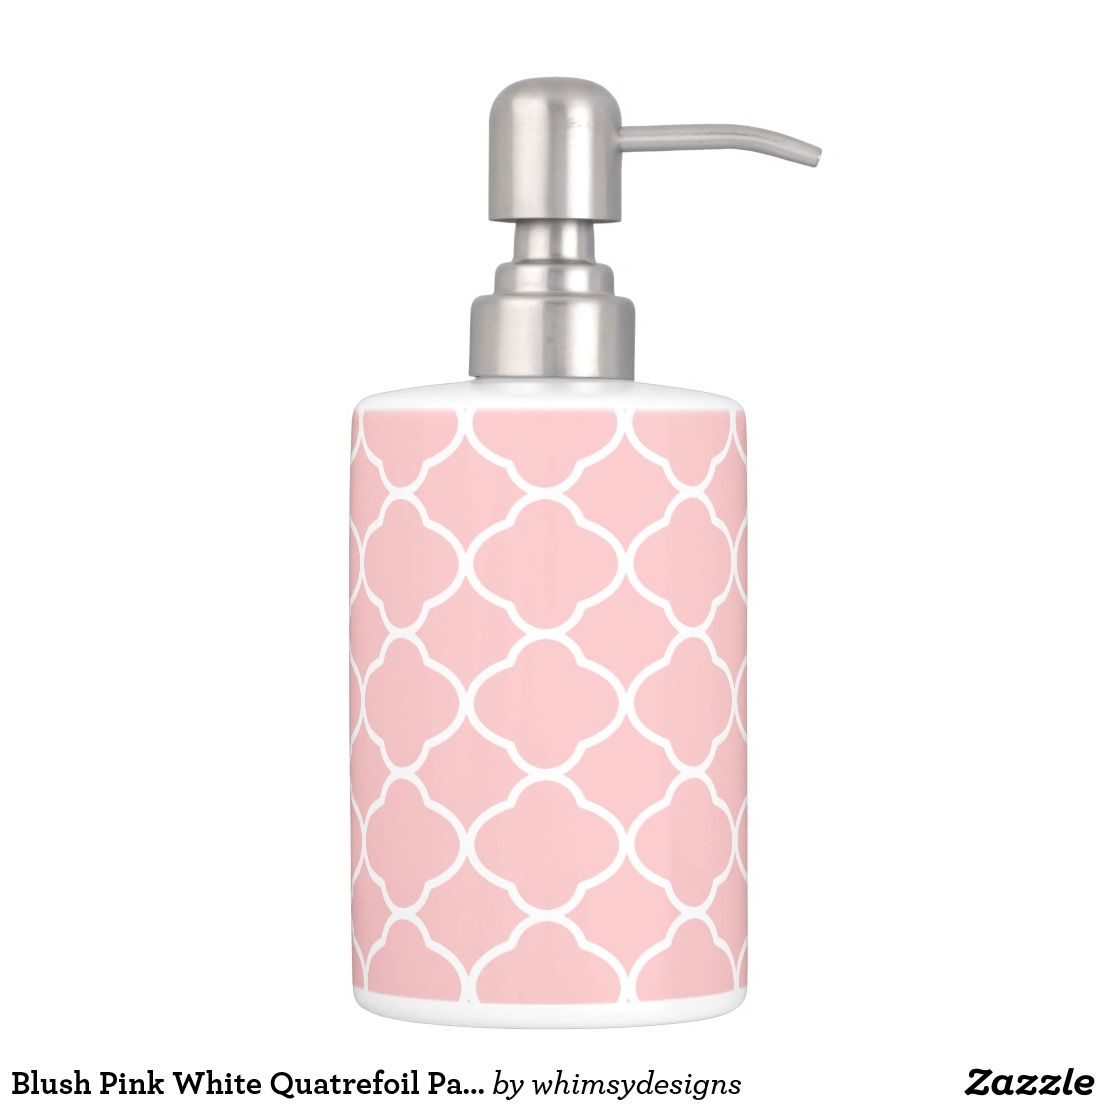 Blush Pink White Quatrefoil Pattern Bathroom Set | Pinterest ...